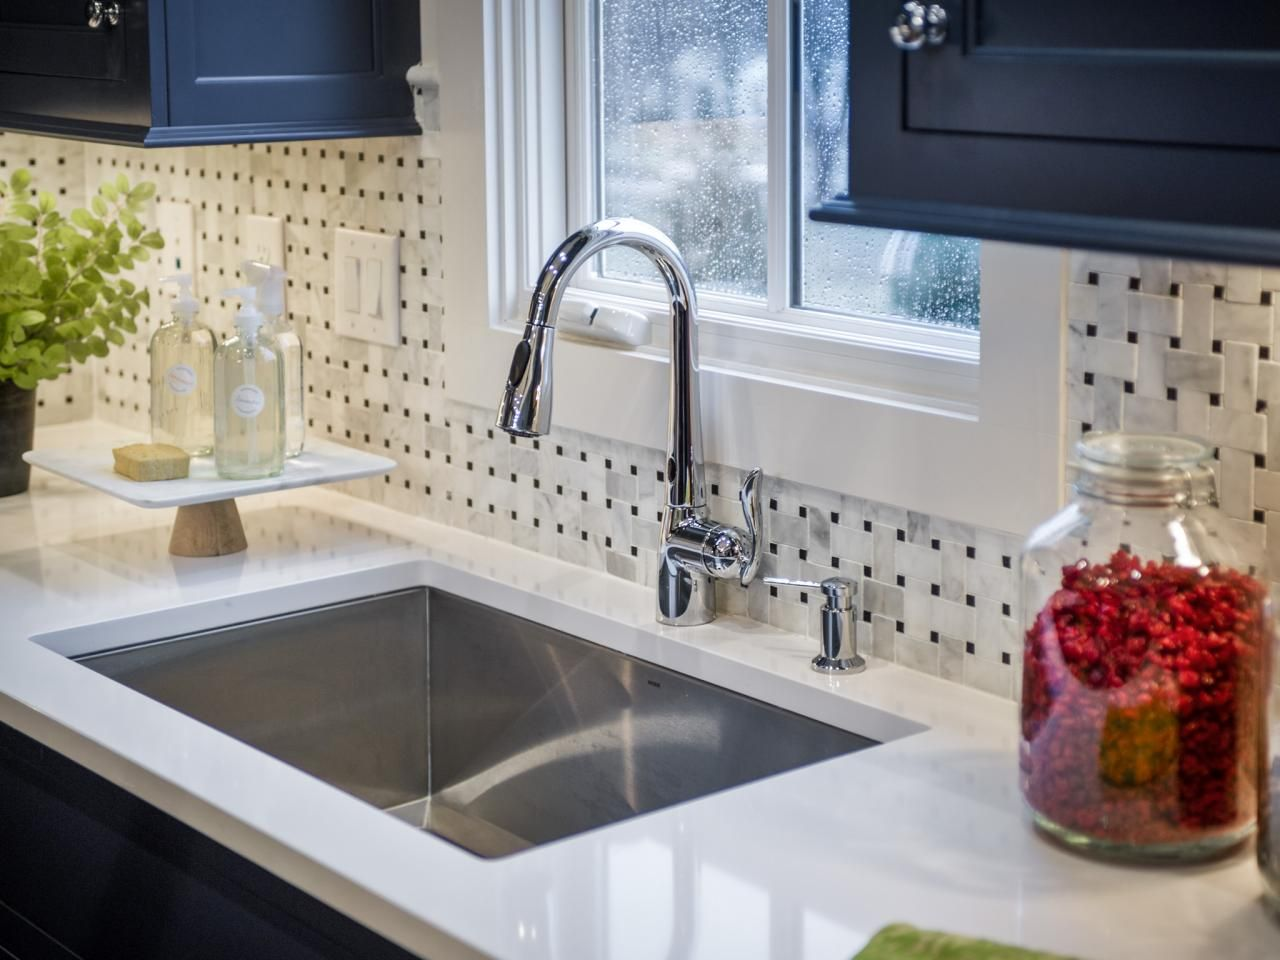 kitchen countertop stone options memphis cabinets our 13 favorite materials more best